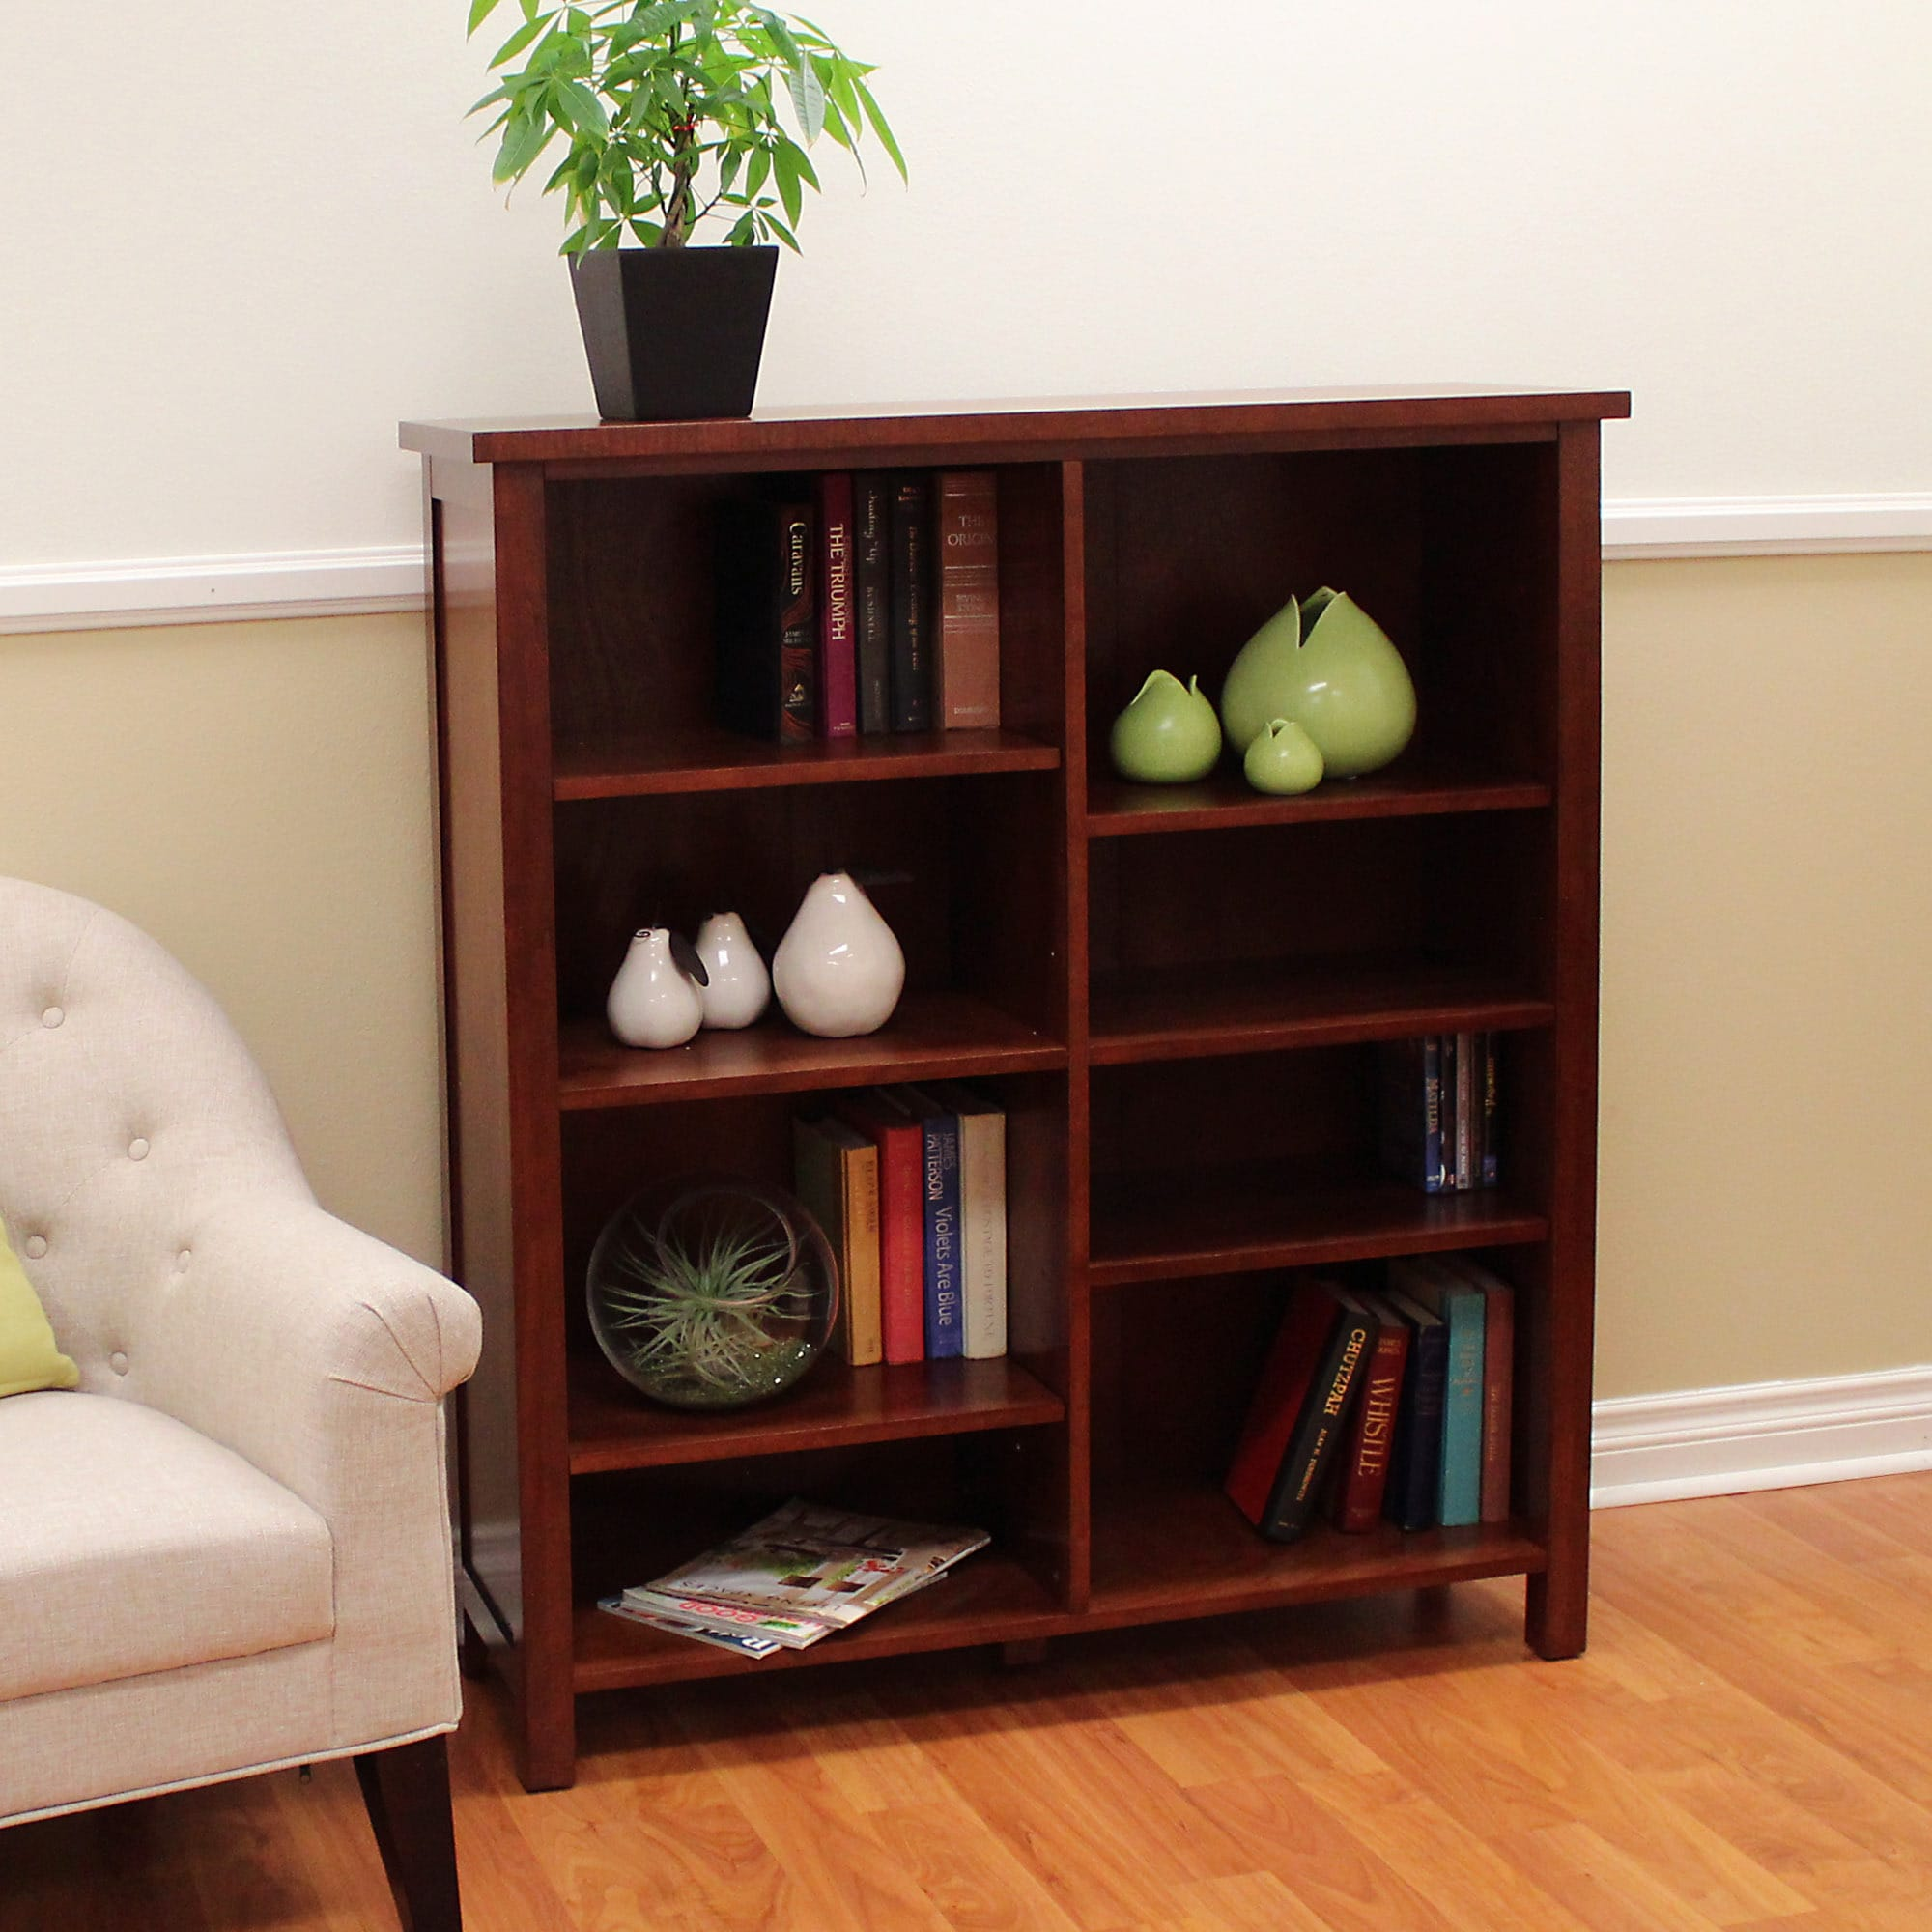 bookcase double bookcases home shipping overstock tierney storage today unit wide garden and wyndenhall century product mid free